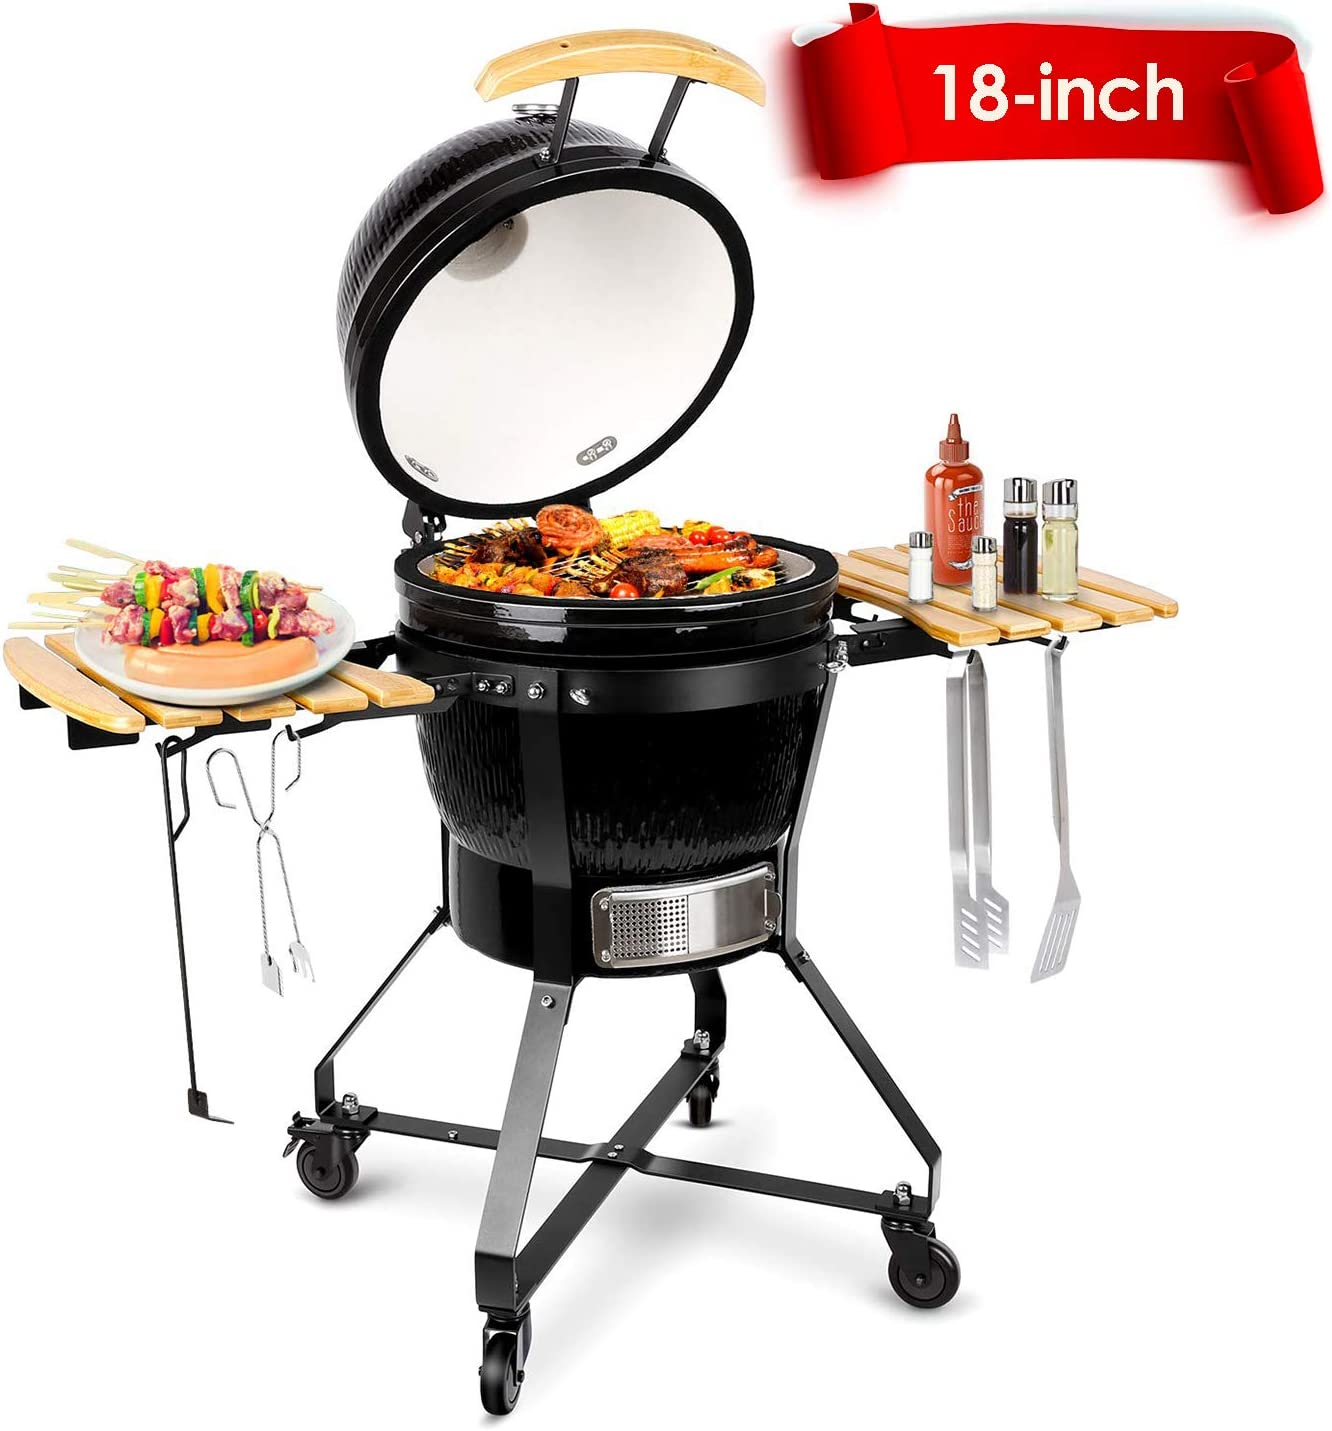 TUSY 18-inch Advanced Ceramic Charcoal Grill: A classic oven integrated ceramic Kamado grill